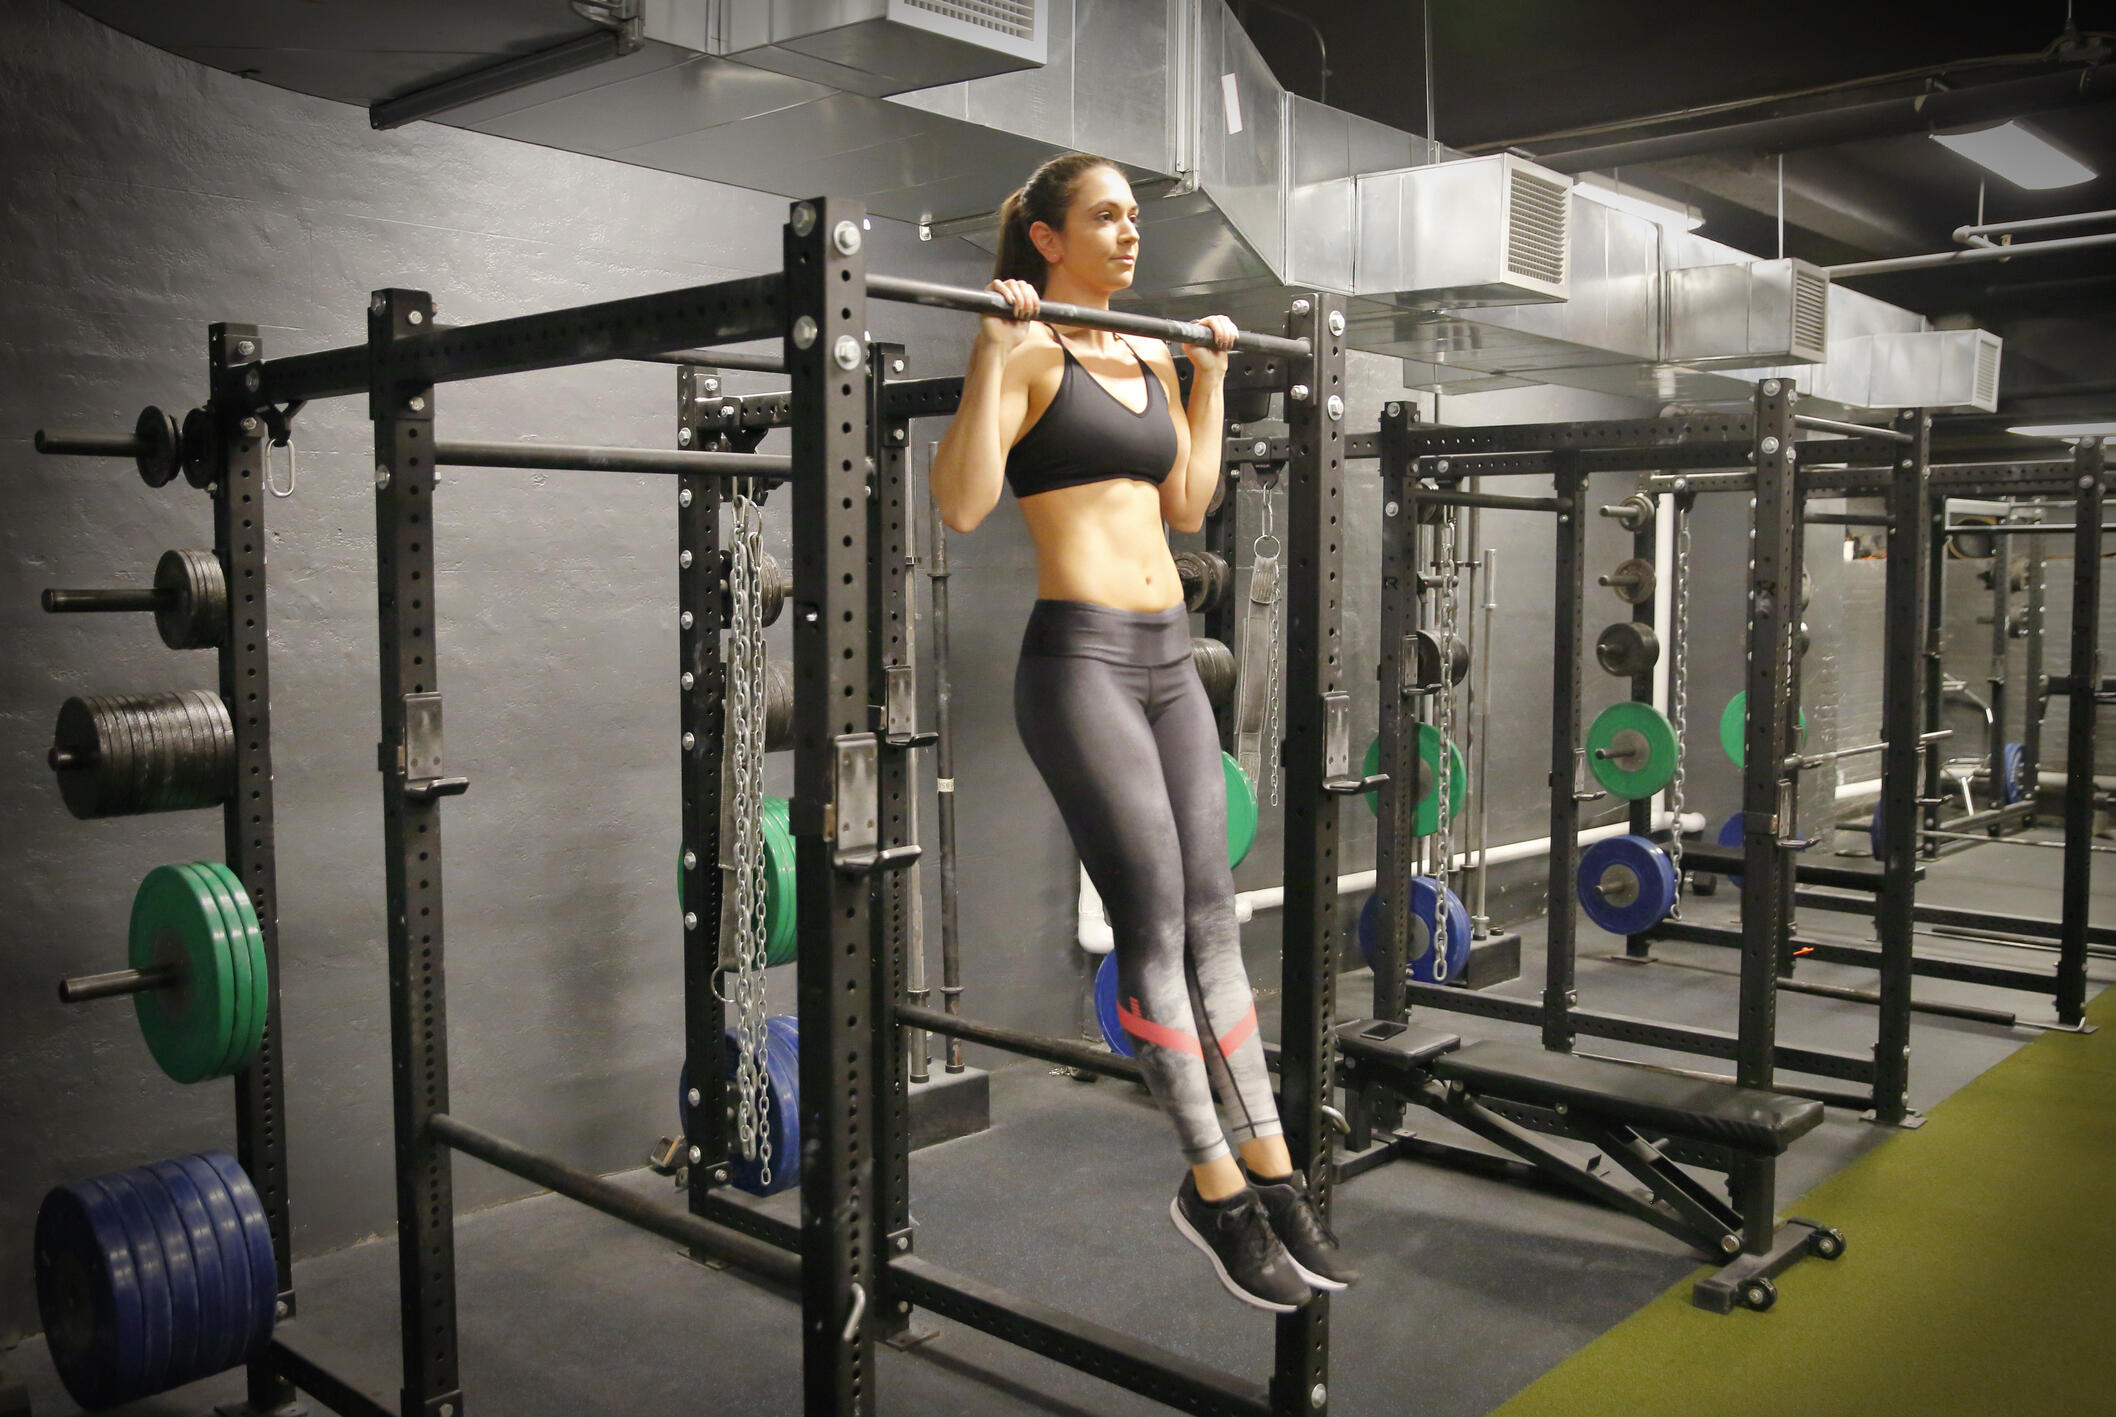 woman doing pull-ups in a gym